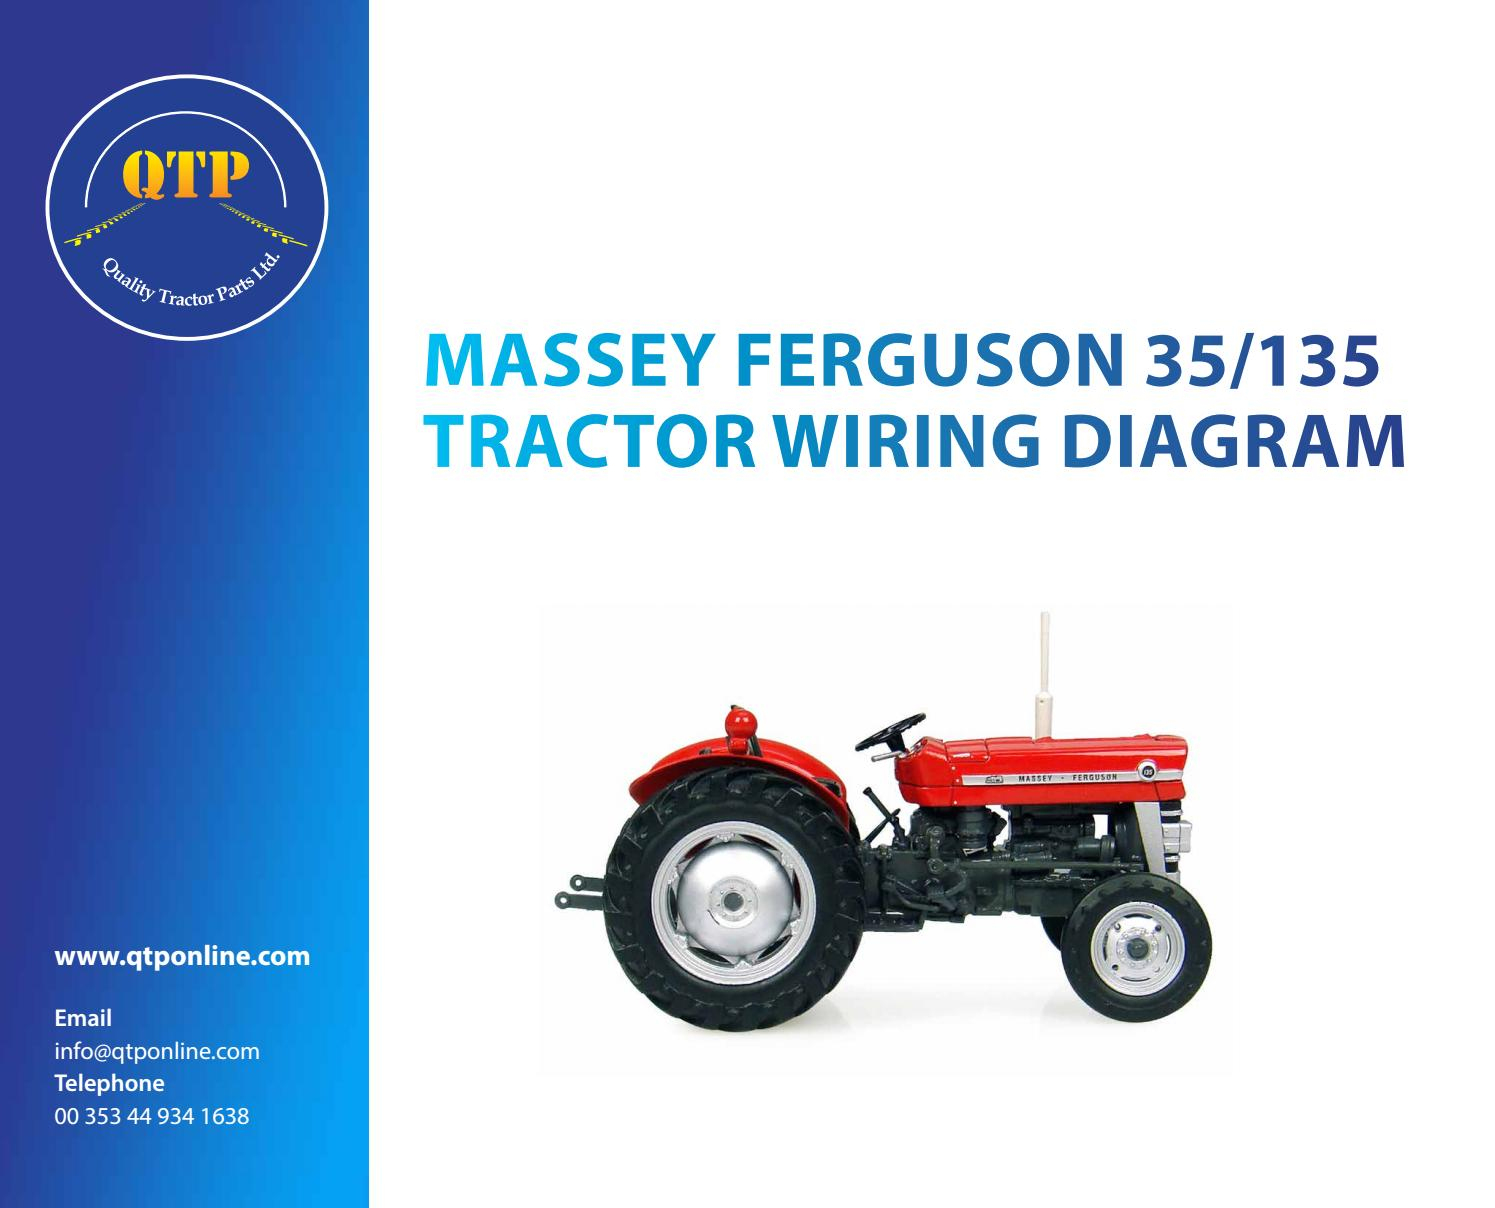 🏆 [DIAGRAM in Pictures Database] Massey Ferguson 240 Wiring Diagram 1980  Just Download or Read Diagram 1980 - DIAGRAM-OF-THE-EAR.ONYXUM.COM